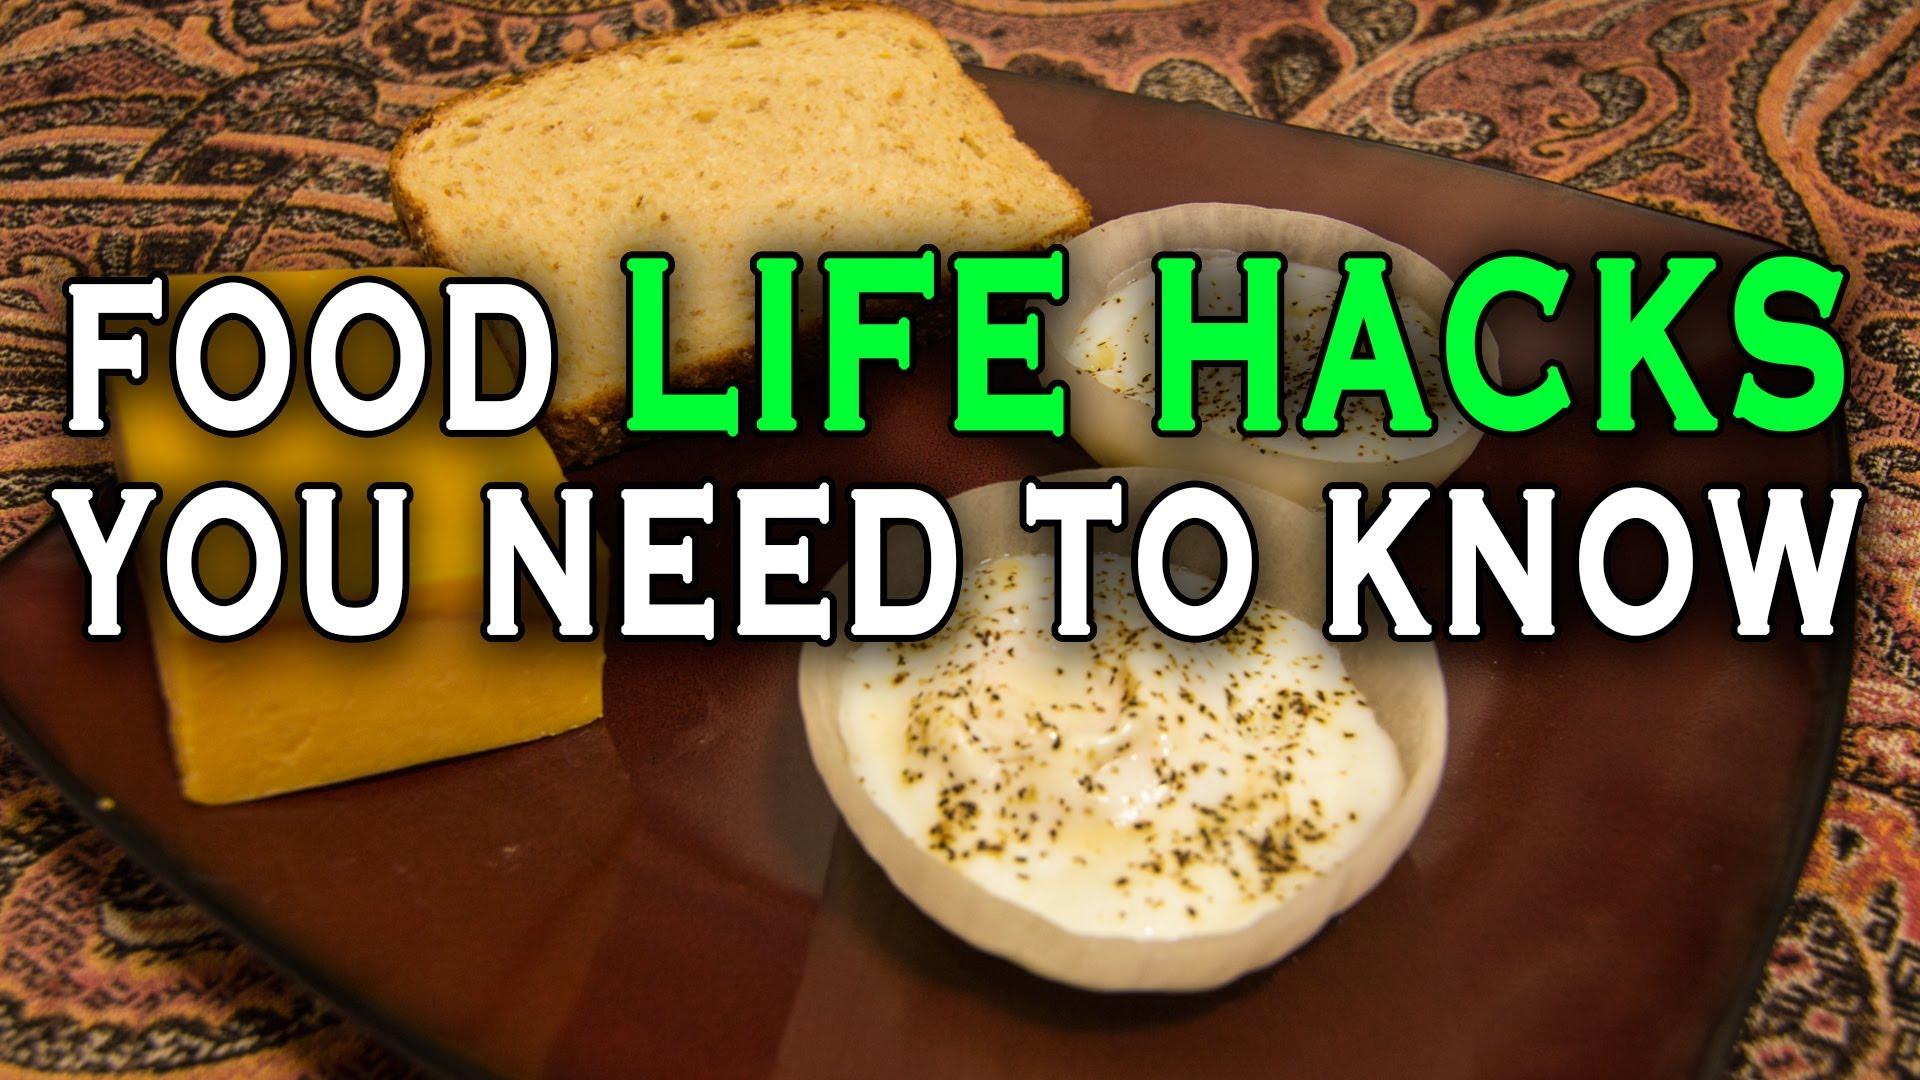 「十個你不可不知的生活偷吃步」- Ten Incredible Food Life Hacks you need to know